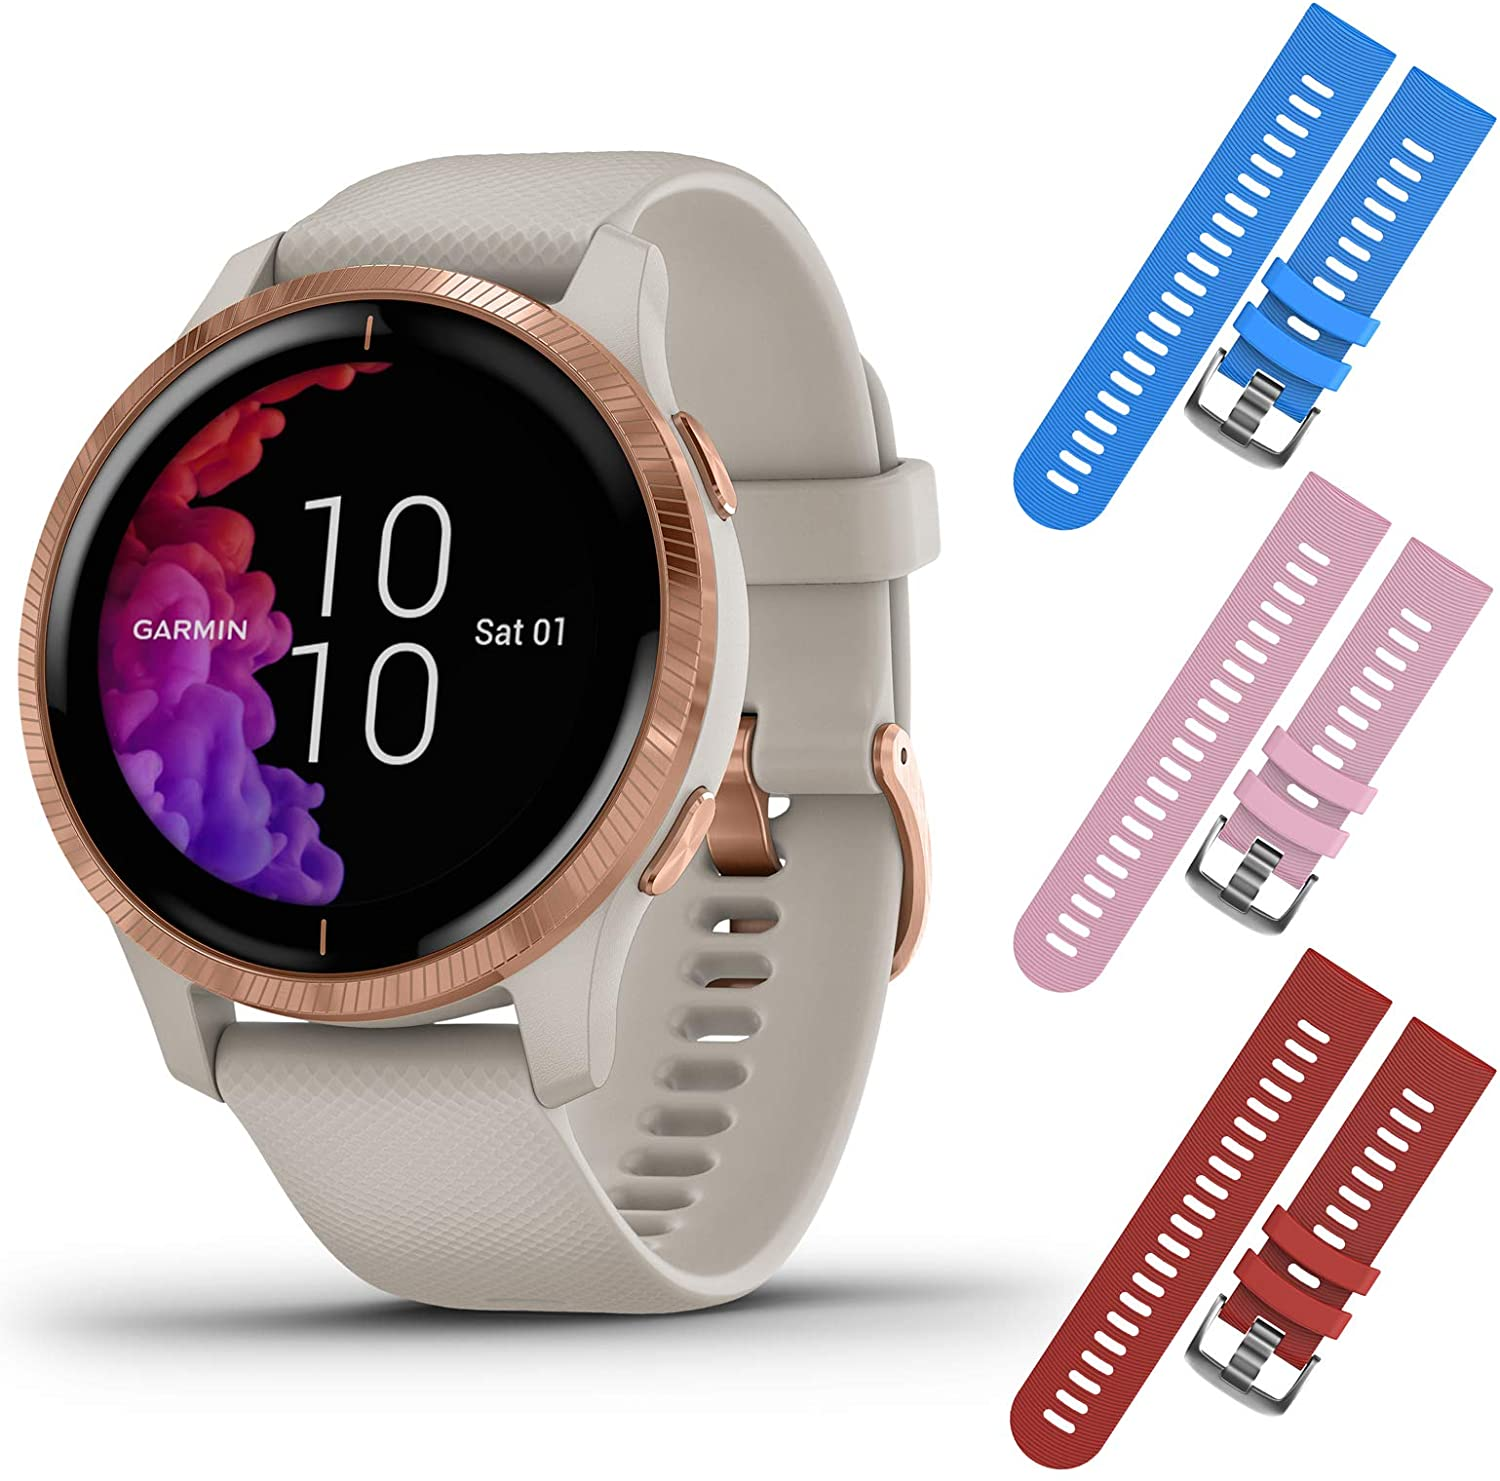 Garmin Venu GPS Smartwatch with AMOLED Display and Included Wearable4U 3 Straps Bundle (Light Sand/Rose Gold, Blue/Pink/Red)